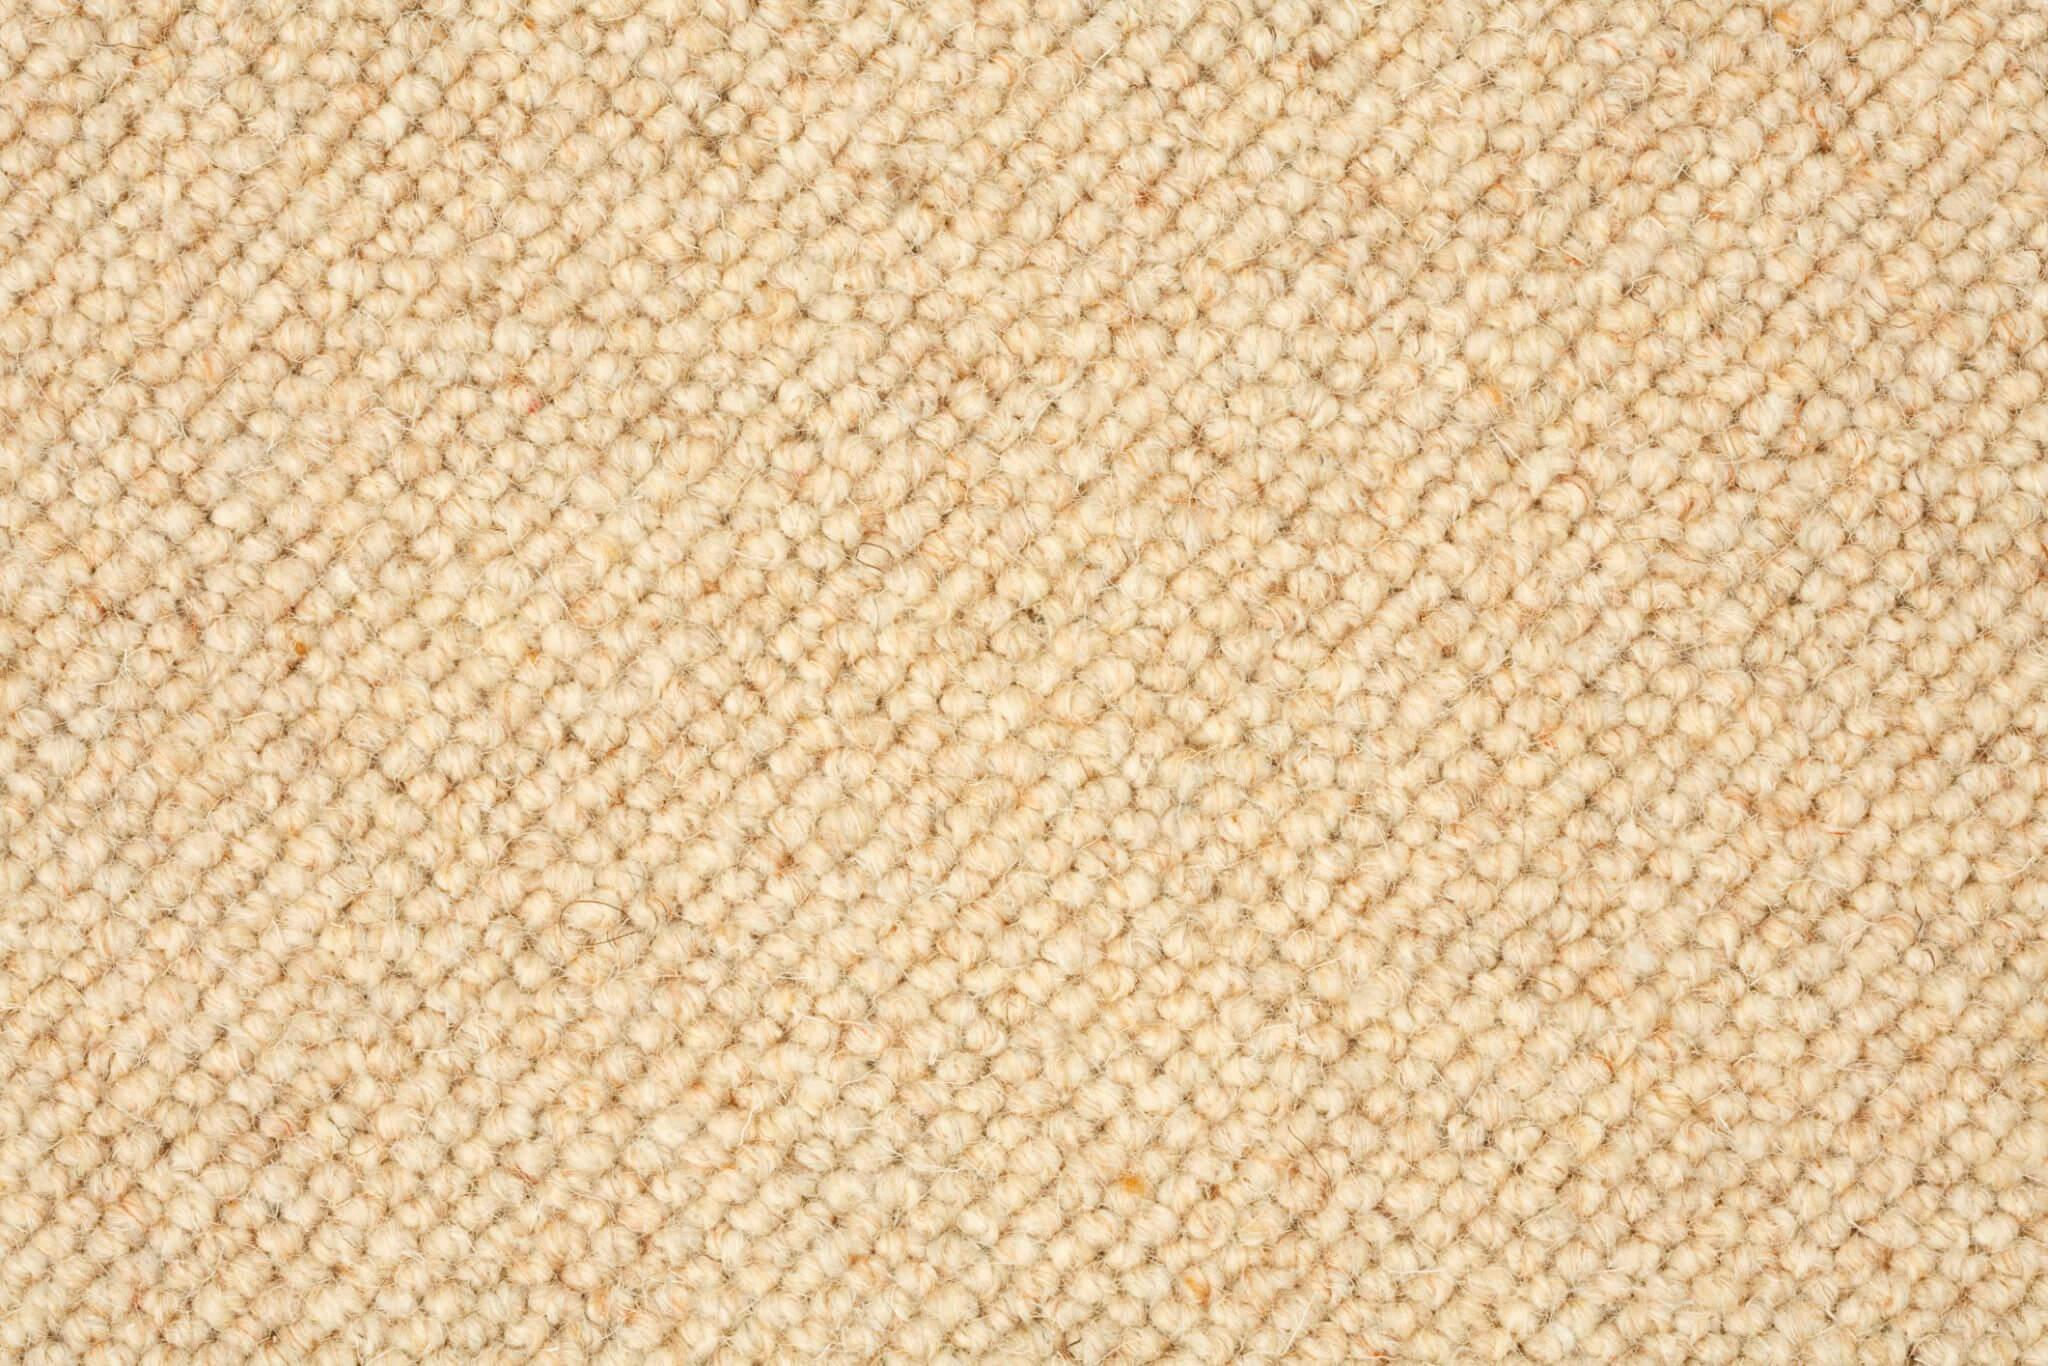 Carpet texture - Carpet Gallery